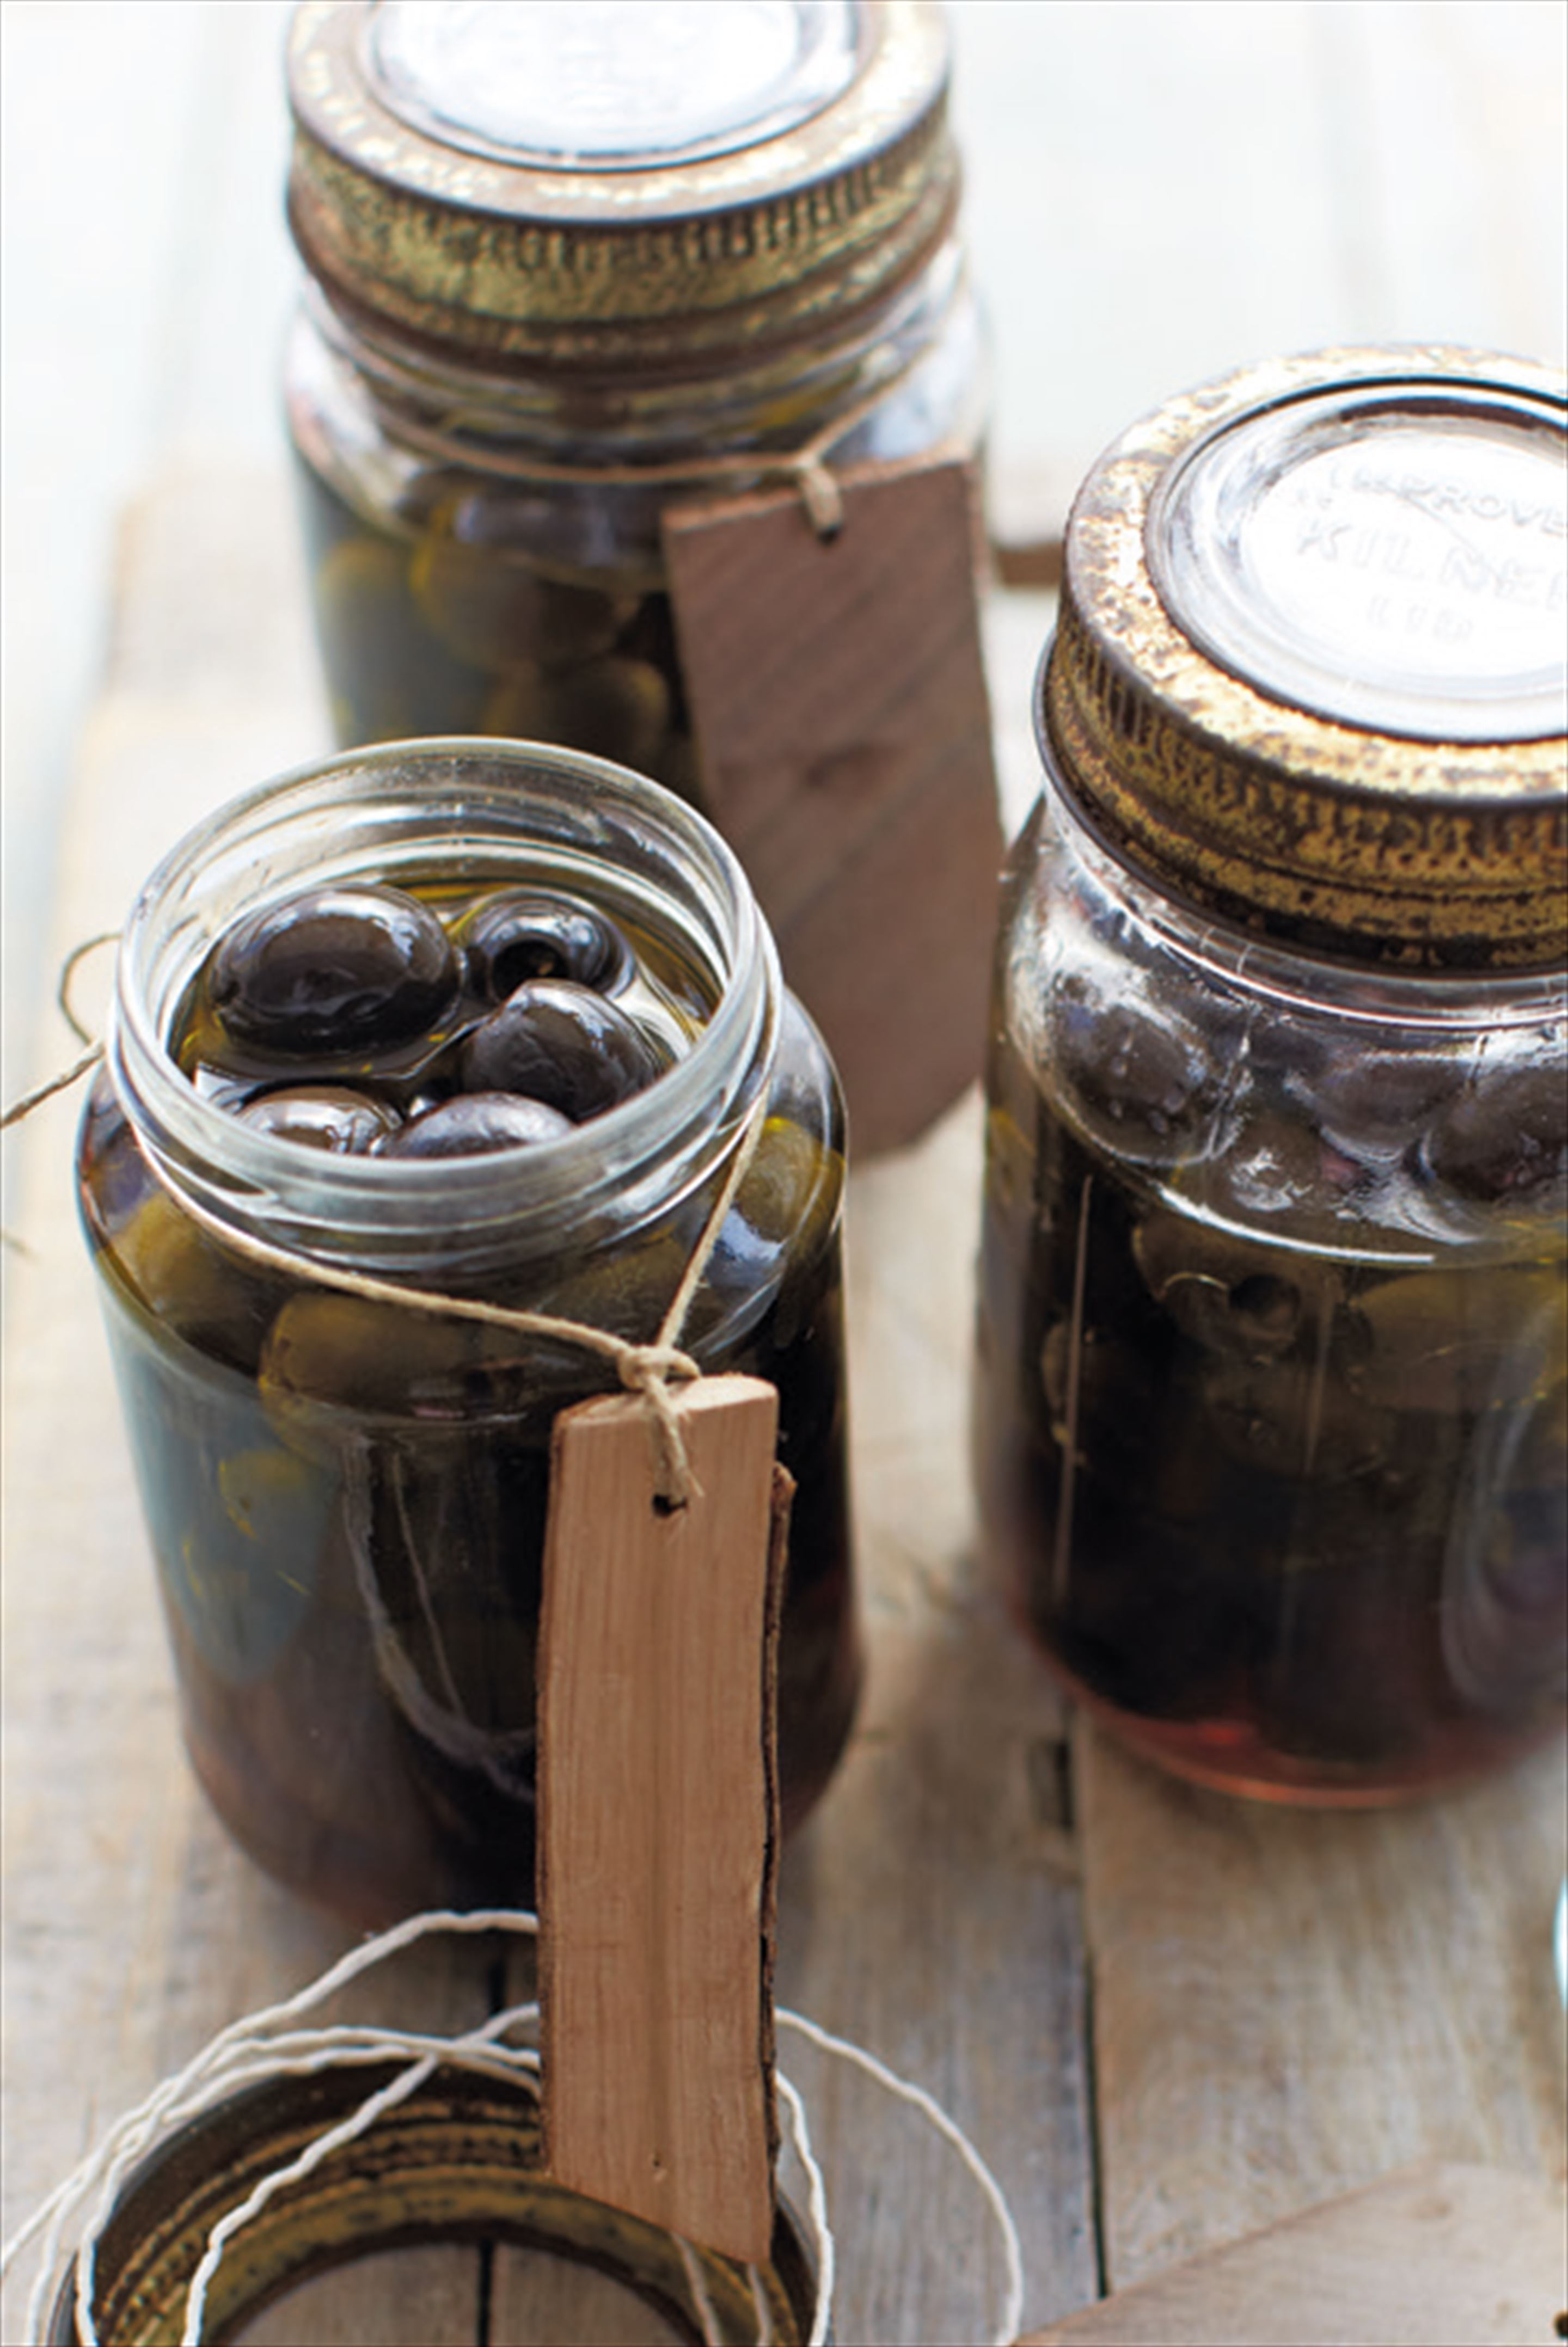 Raspberry vinegar olives